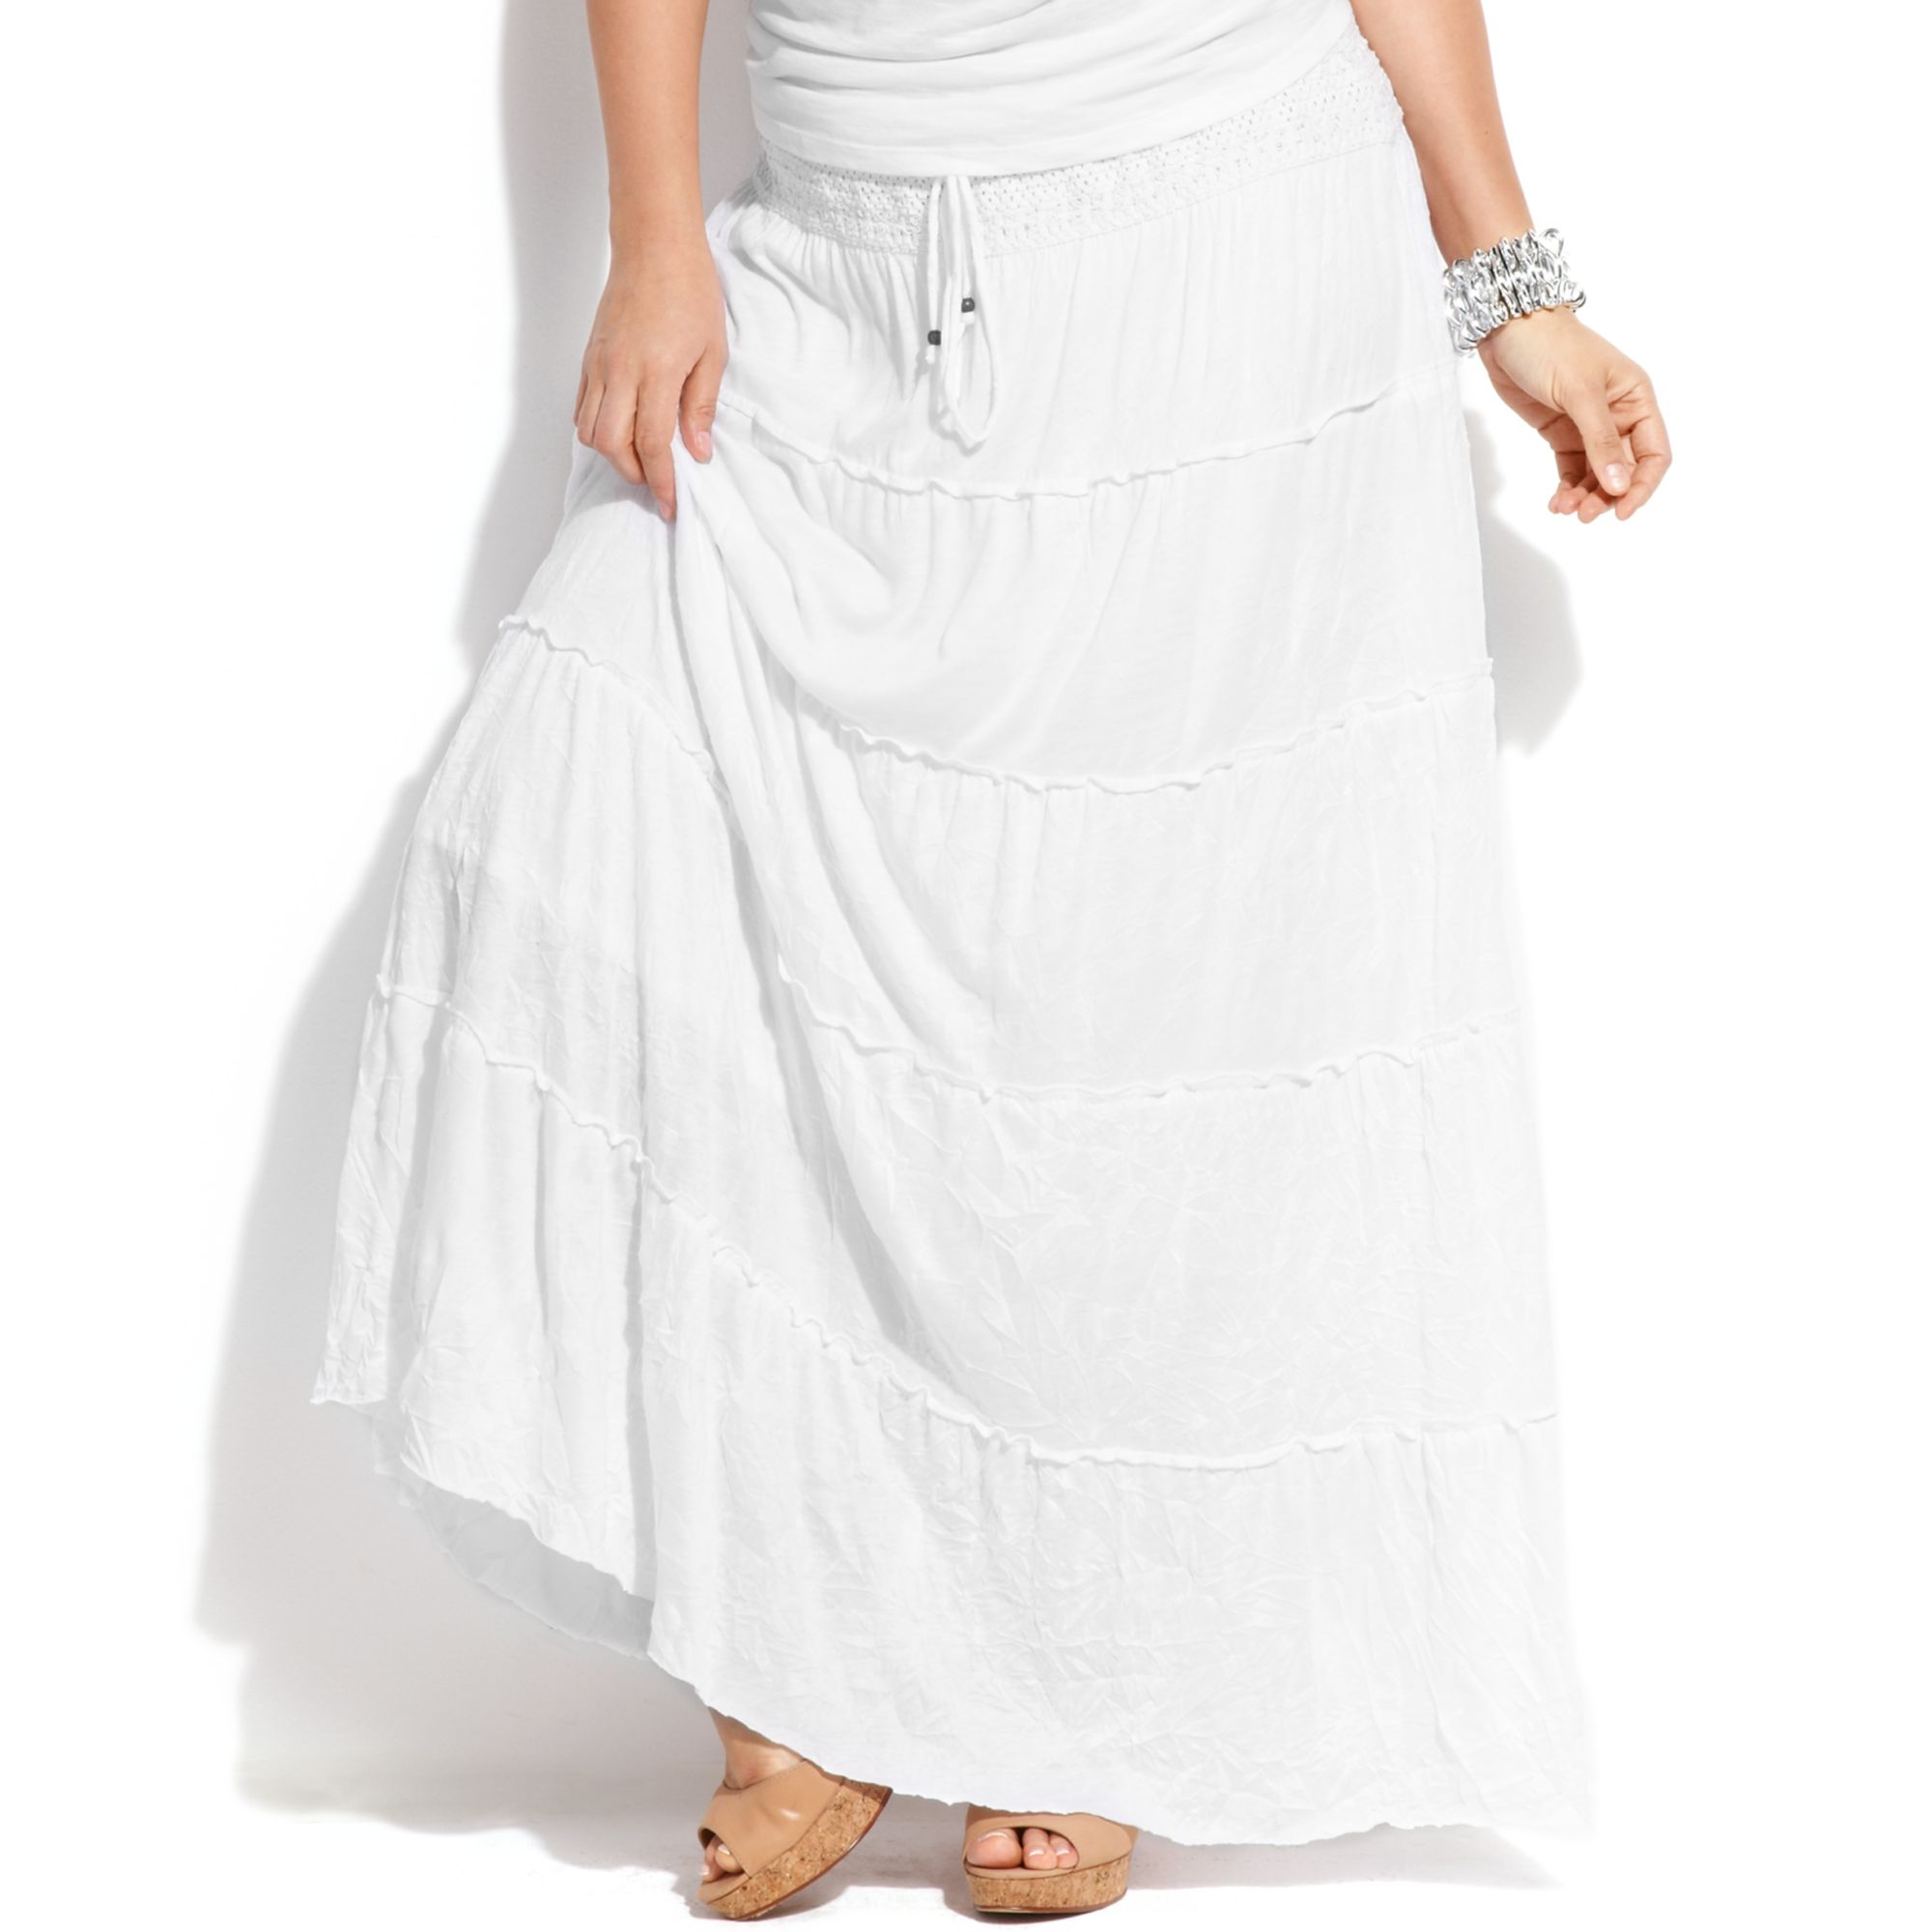 Inc international concepts Plus Size Tiered Maxi Skirt in White | Lyst